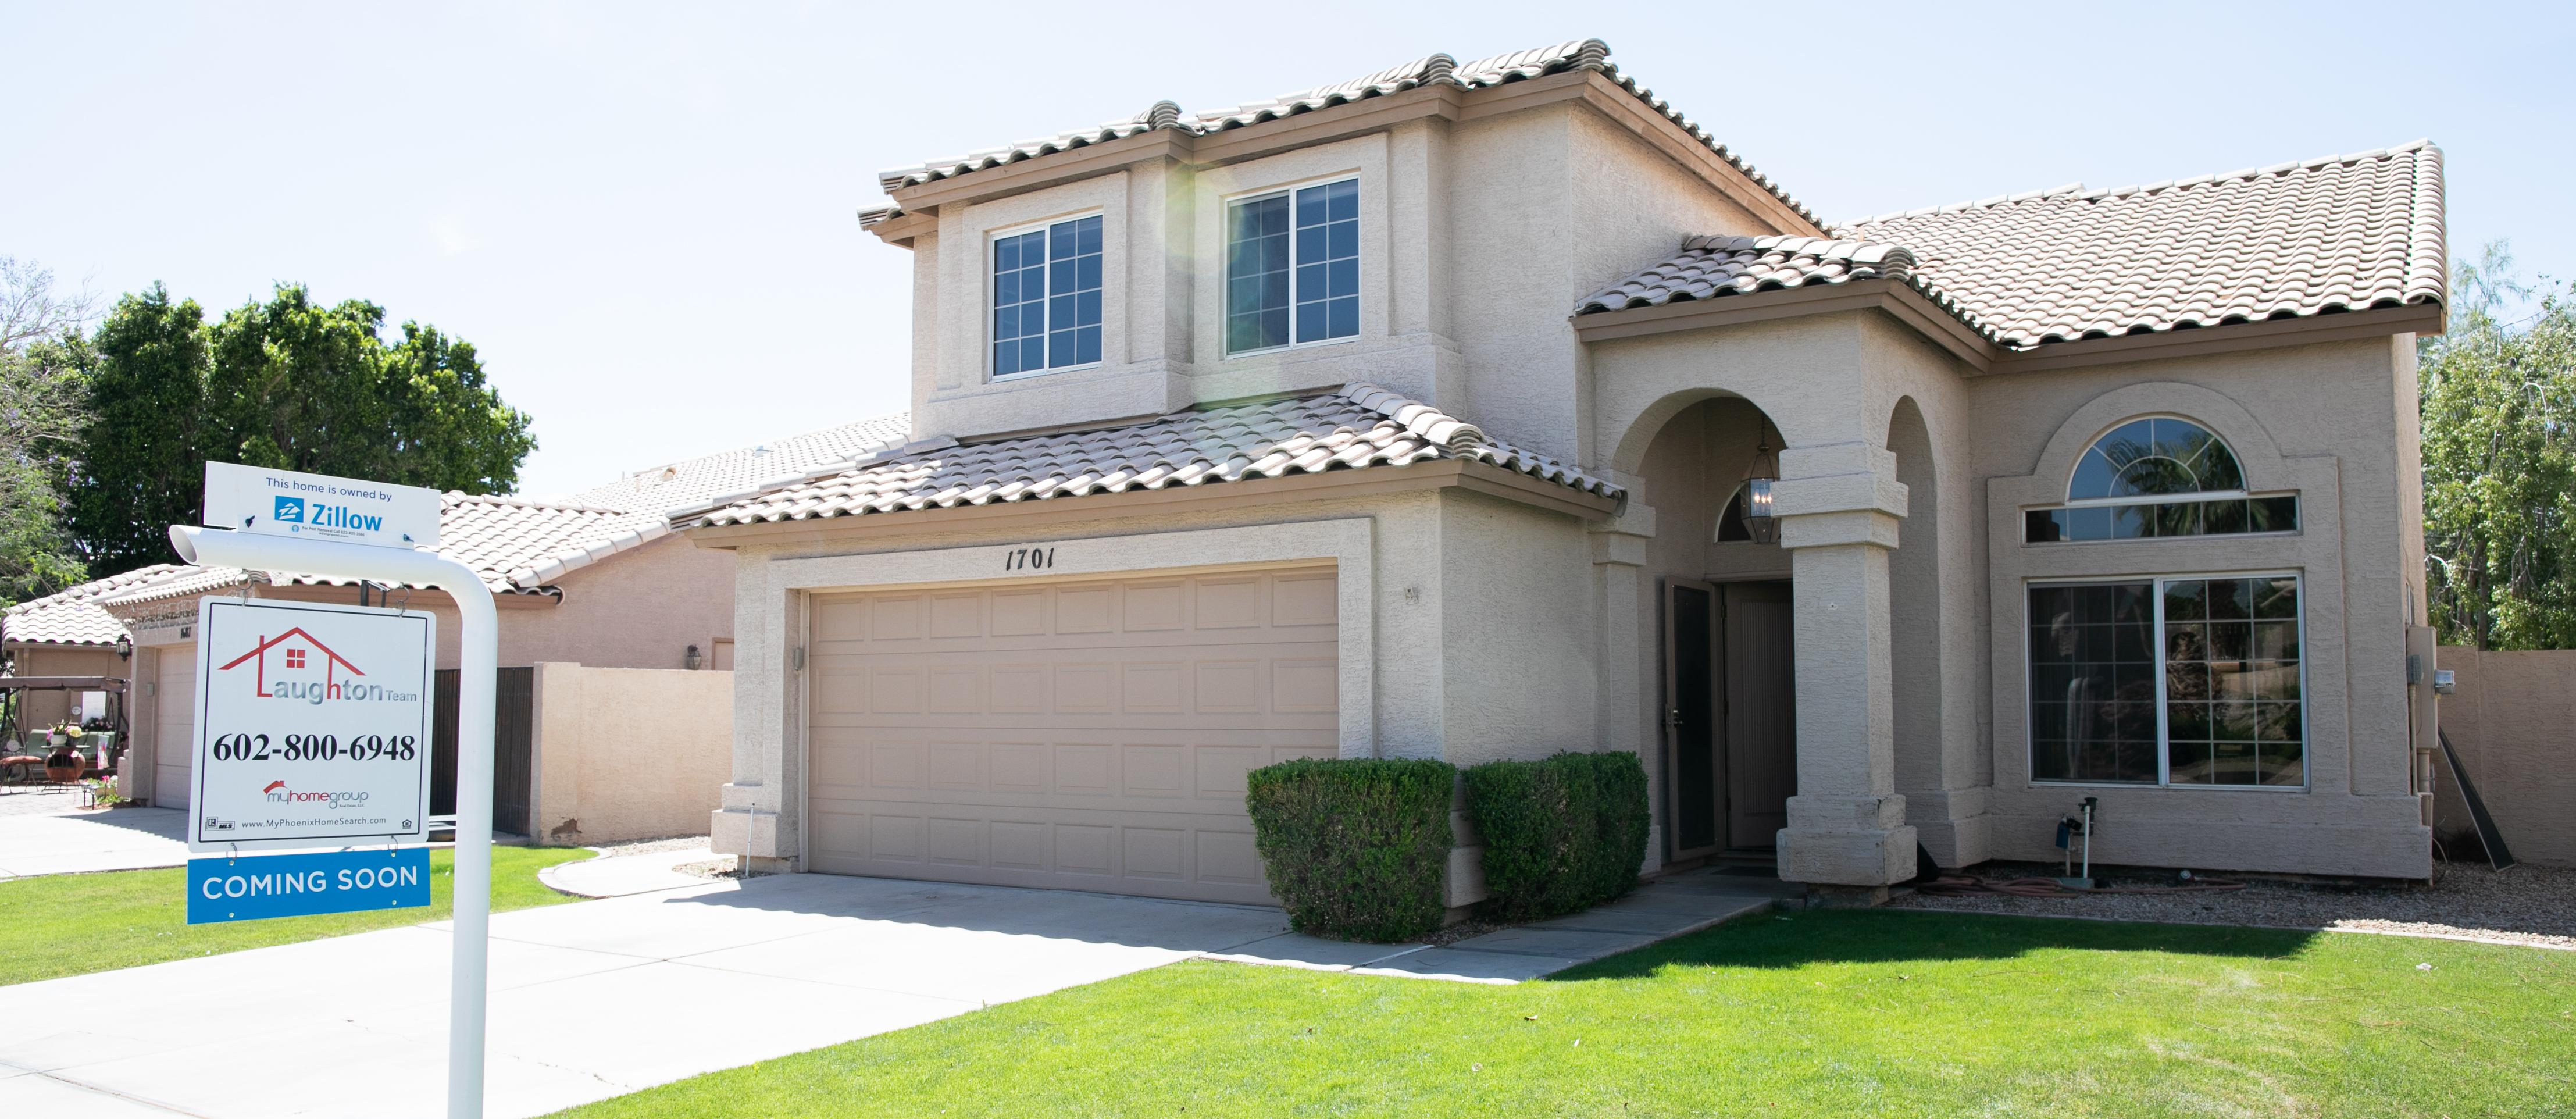 Zillow-GilbertHouse-5[2][1]